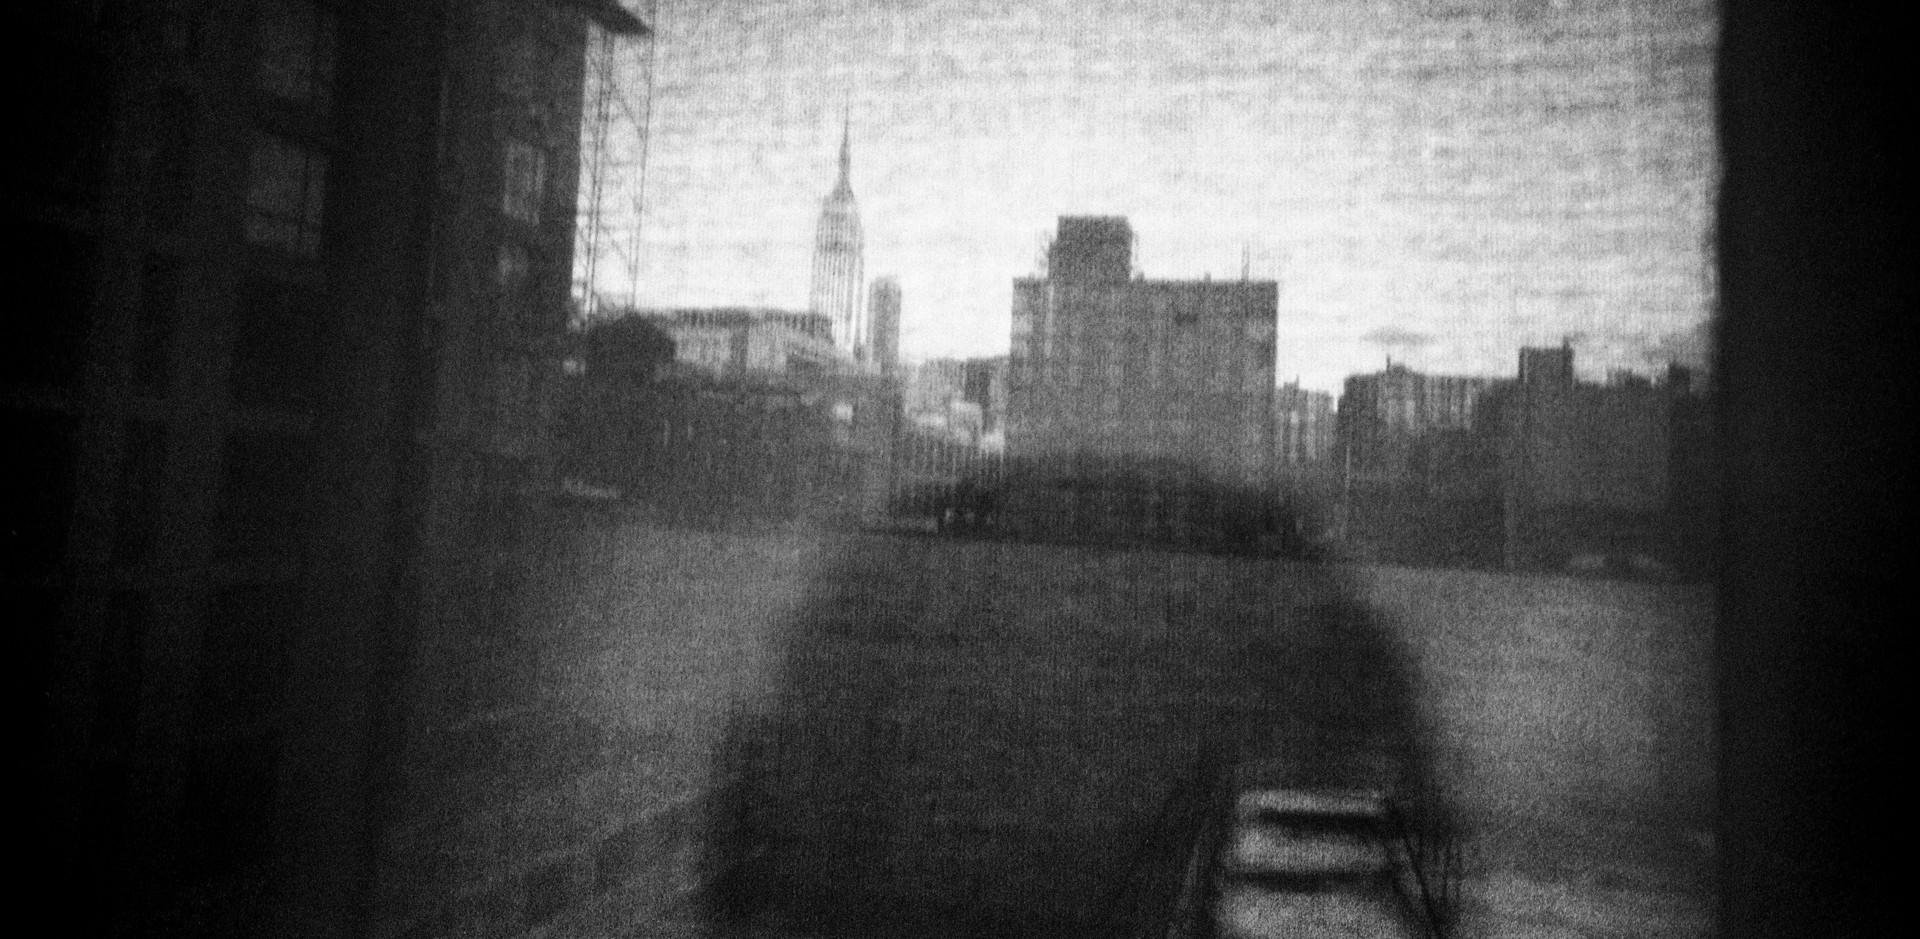 Shadow figure looking over black-and-white city scene